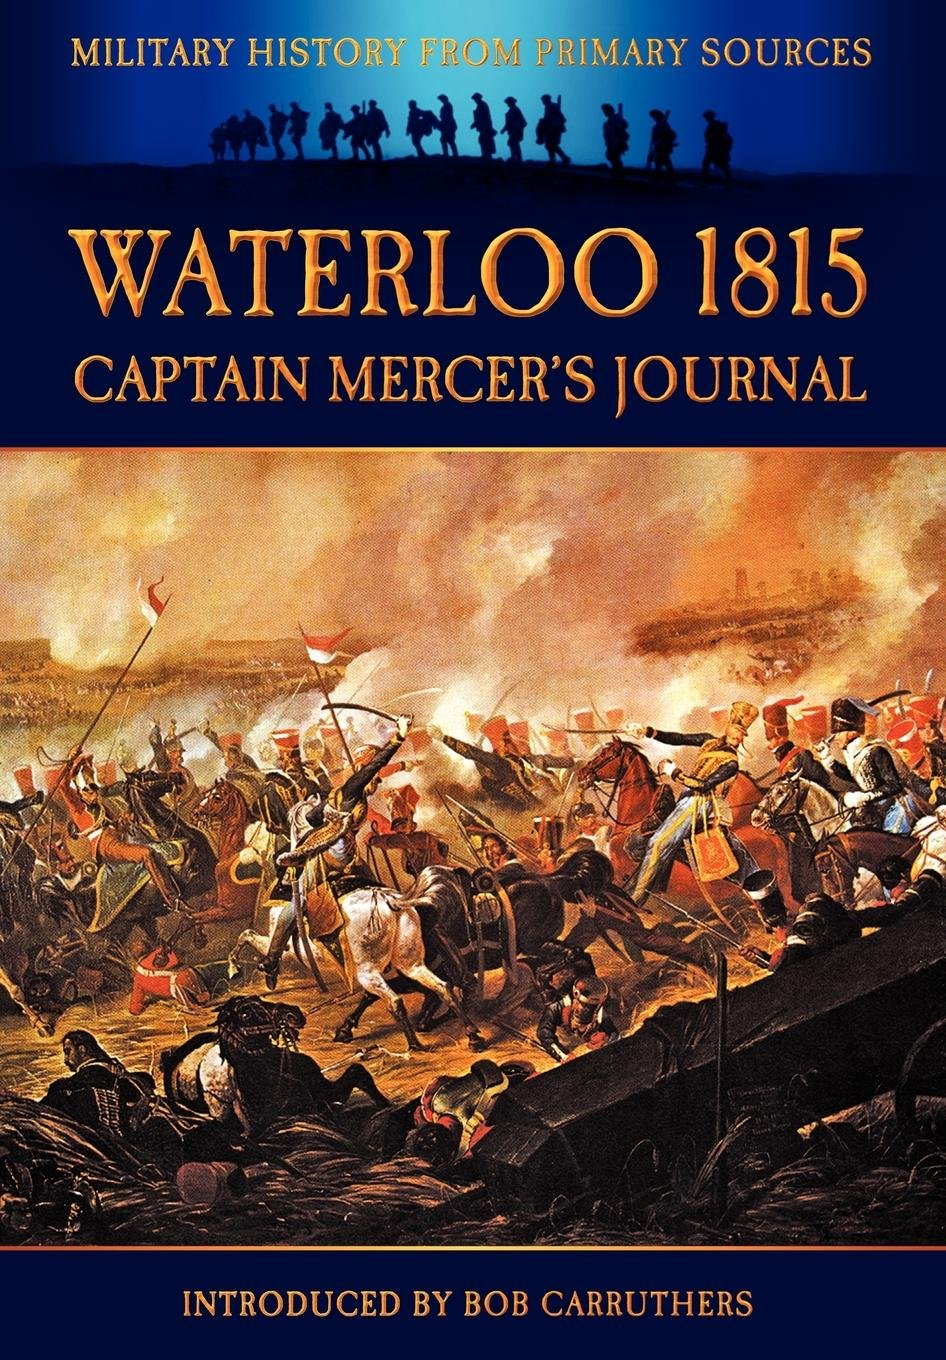 Download Waterloo 1815 - Captain Mercer's Journal (Military History from Primary Sources) PDF